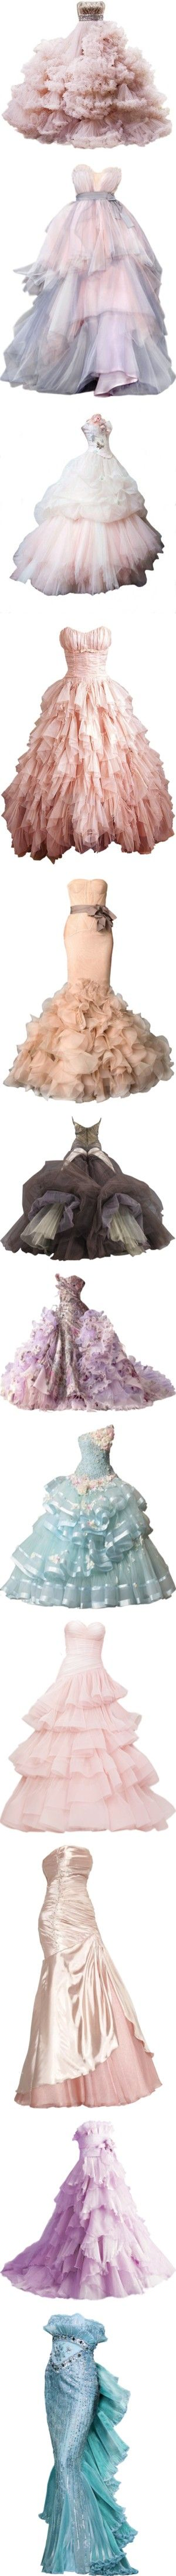 """*-* Gorgeous Gowns *-*"" by turkishgirlish ❤ liked on Polyvore"